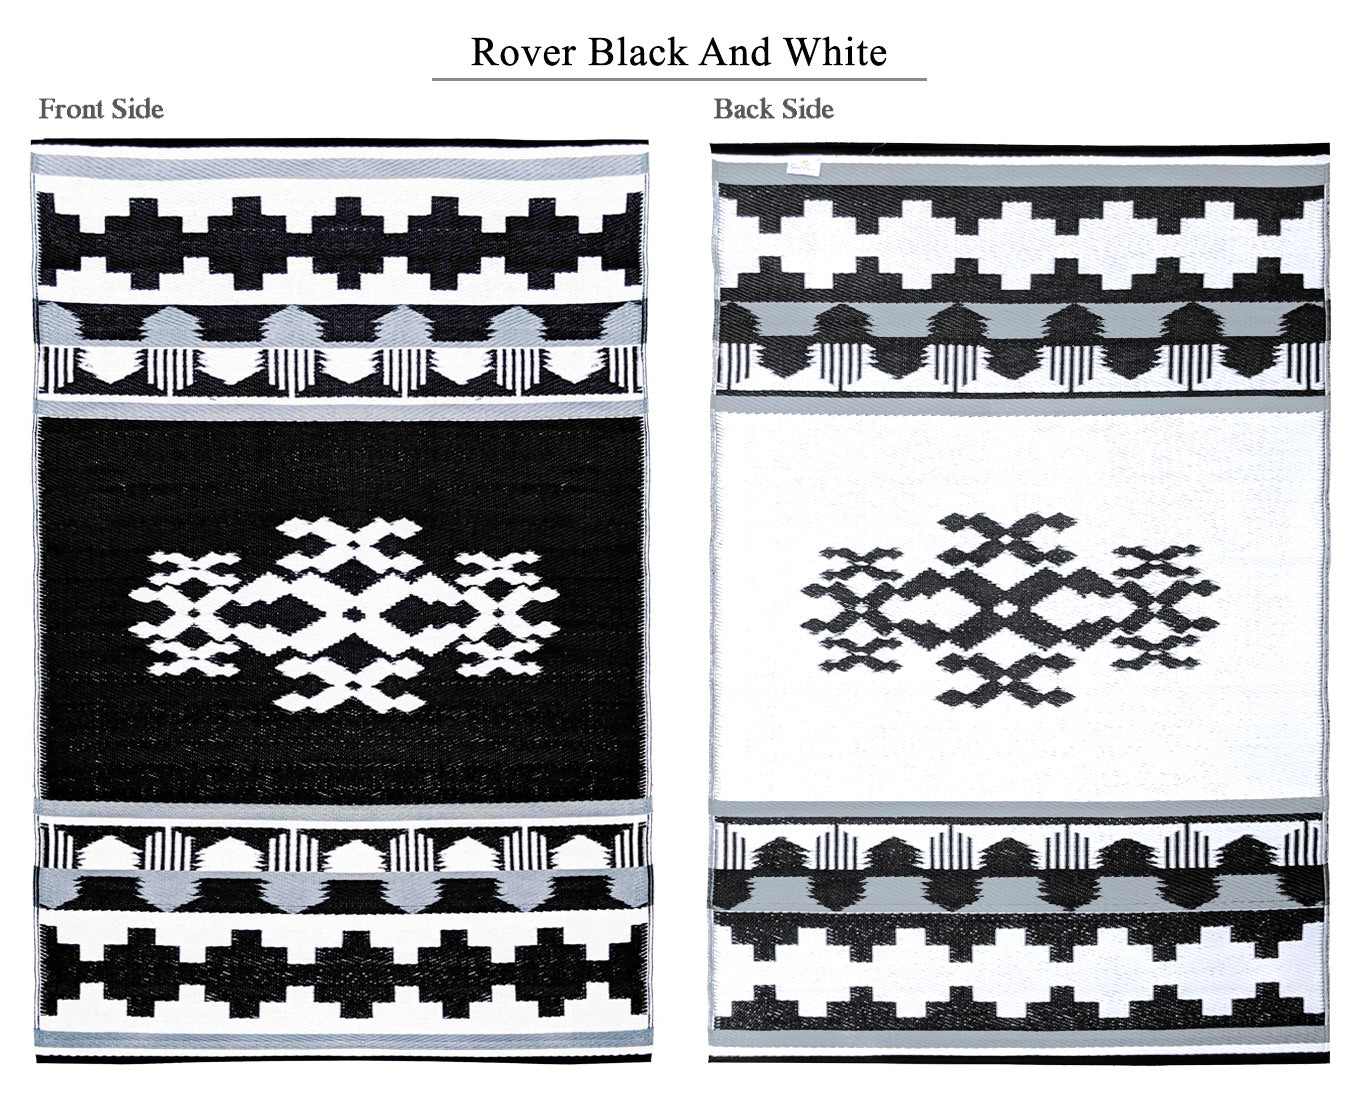 Rover Outdoor Recycled Plastic Rug (Black/White)